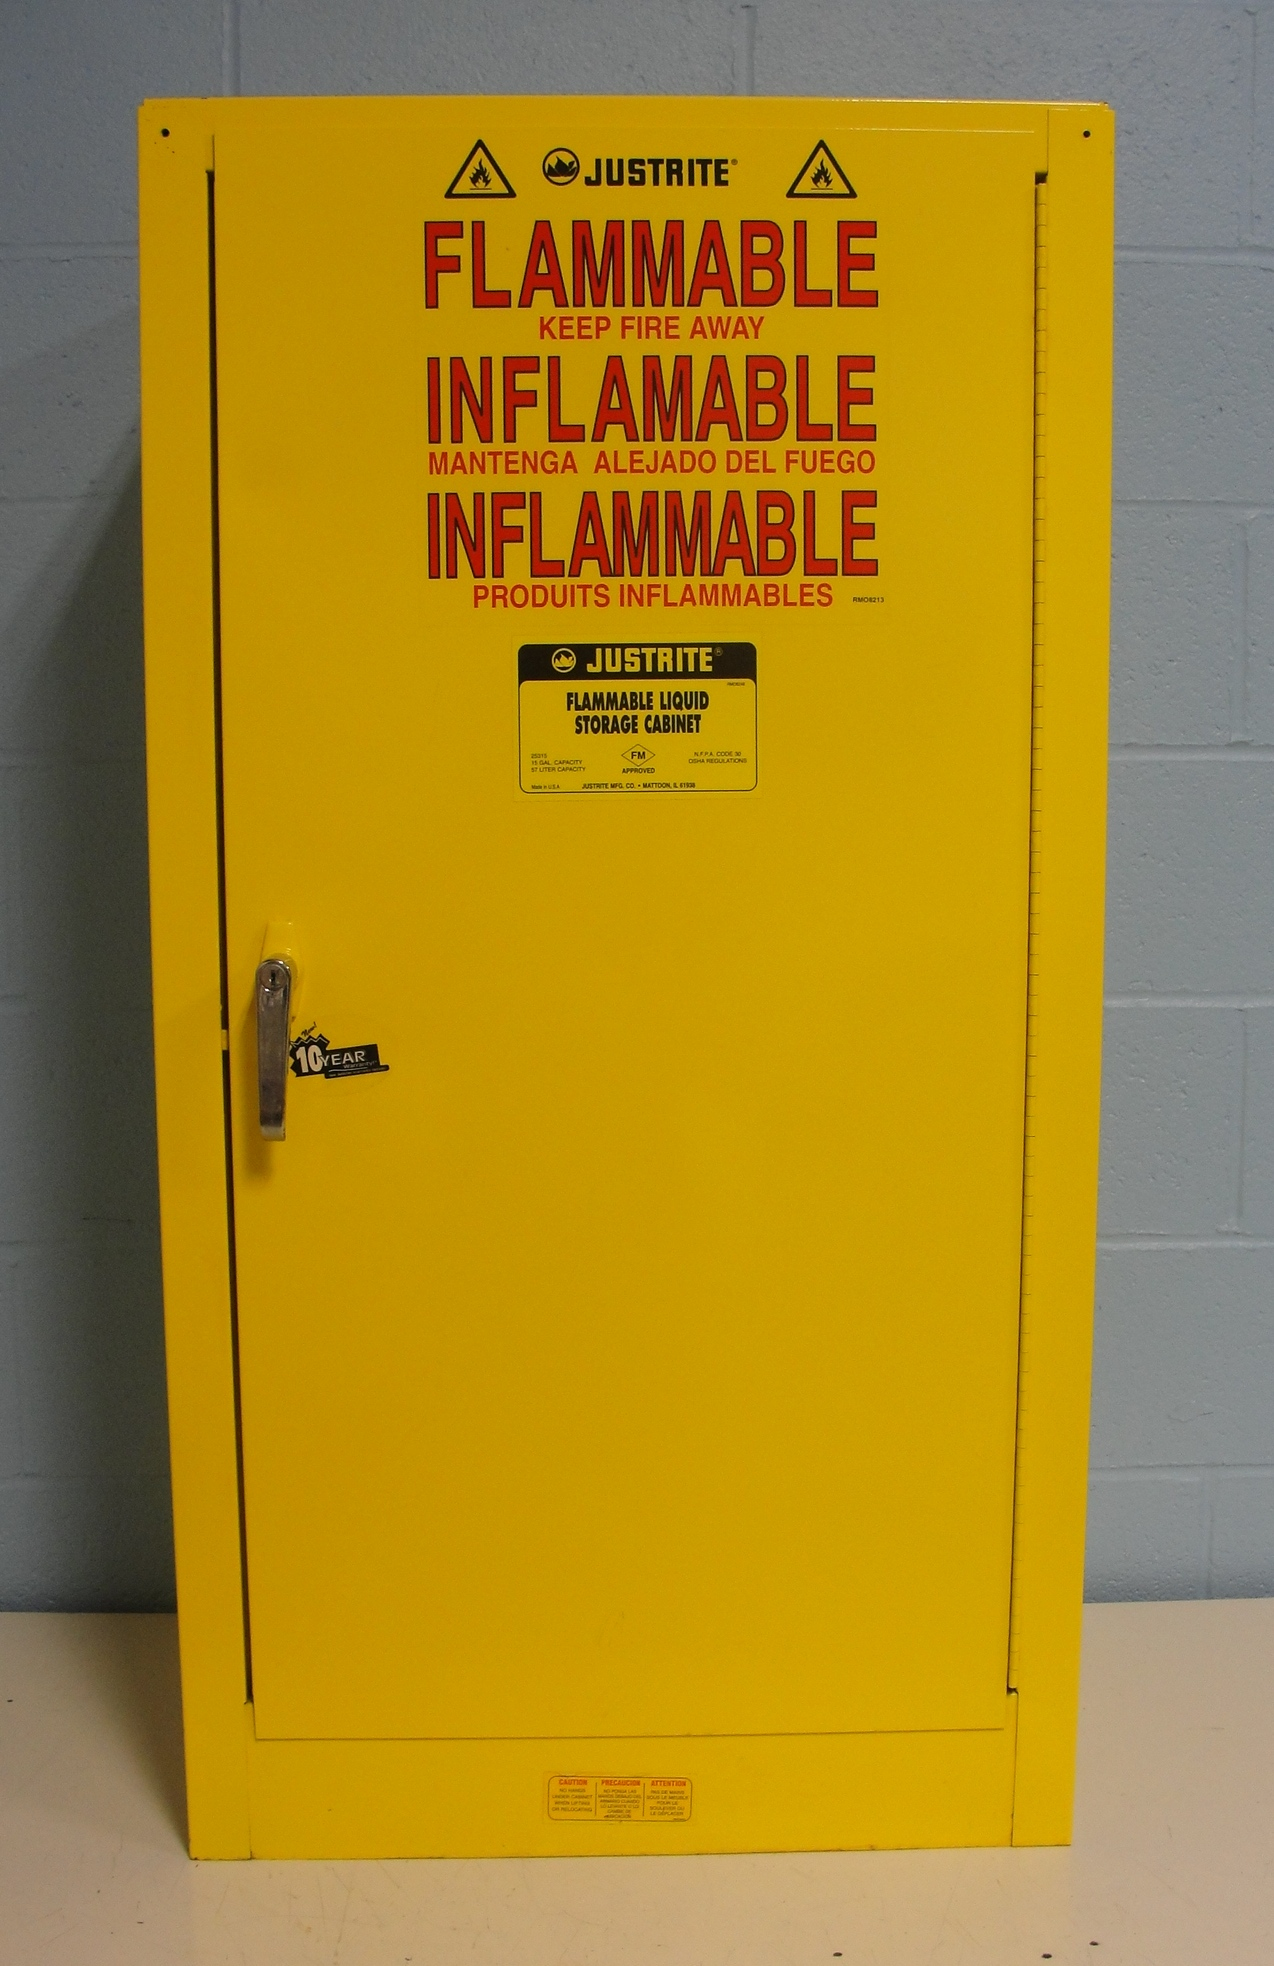 Justrite 25710 Flammable Liquid Storage Cabinet Image & Refurbished Justrite 25710 Flammable Liquid Storage Cabinet